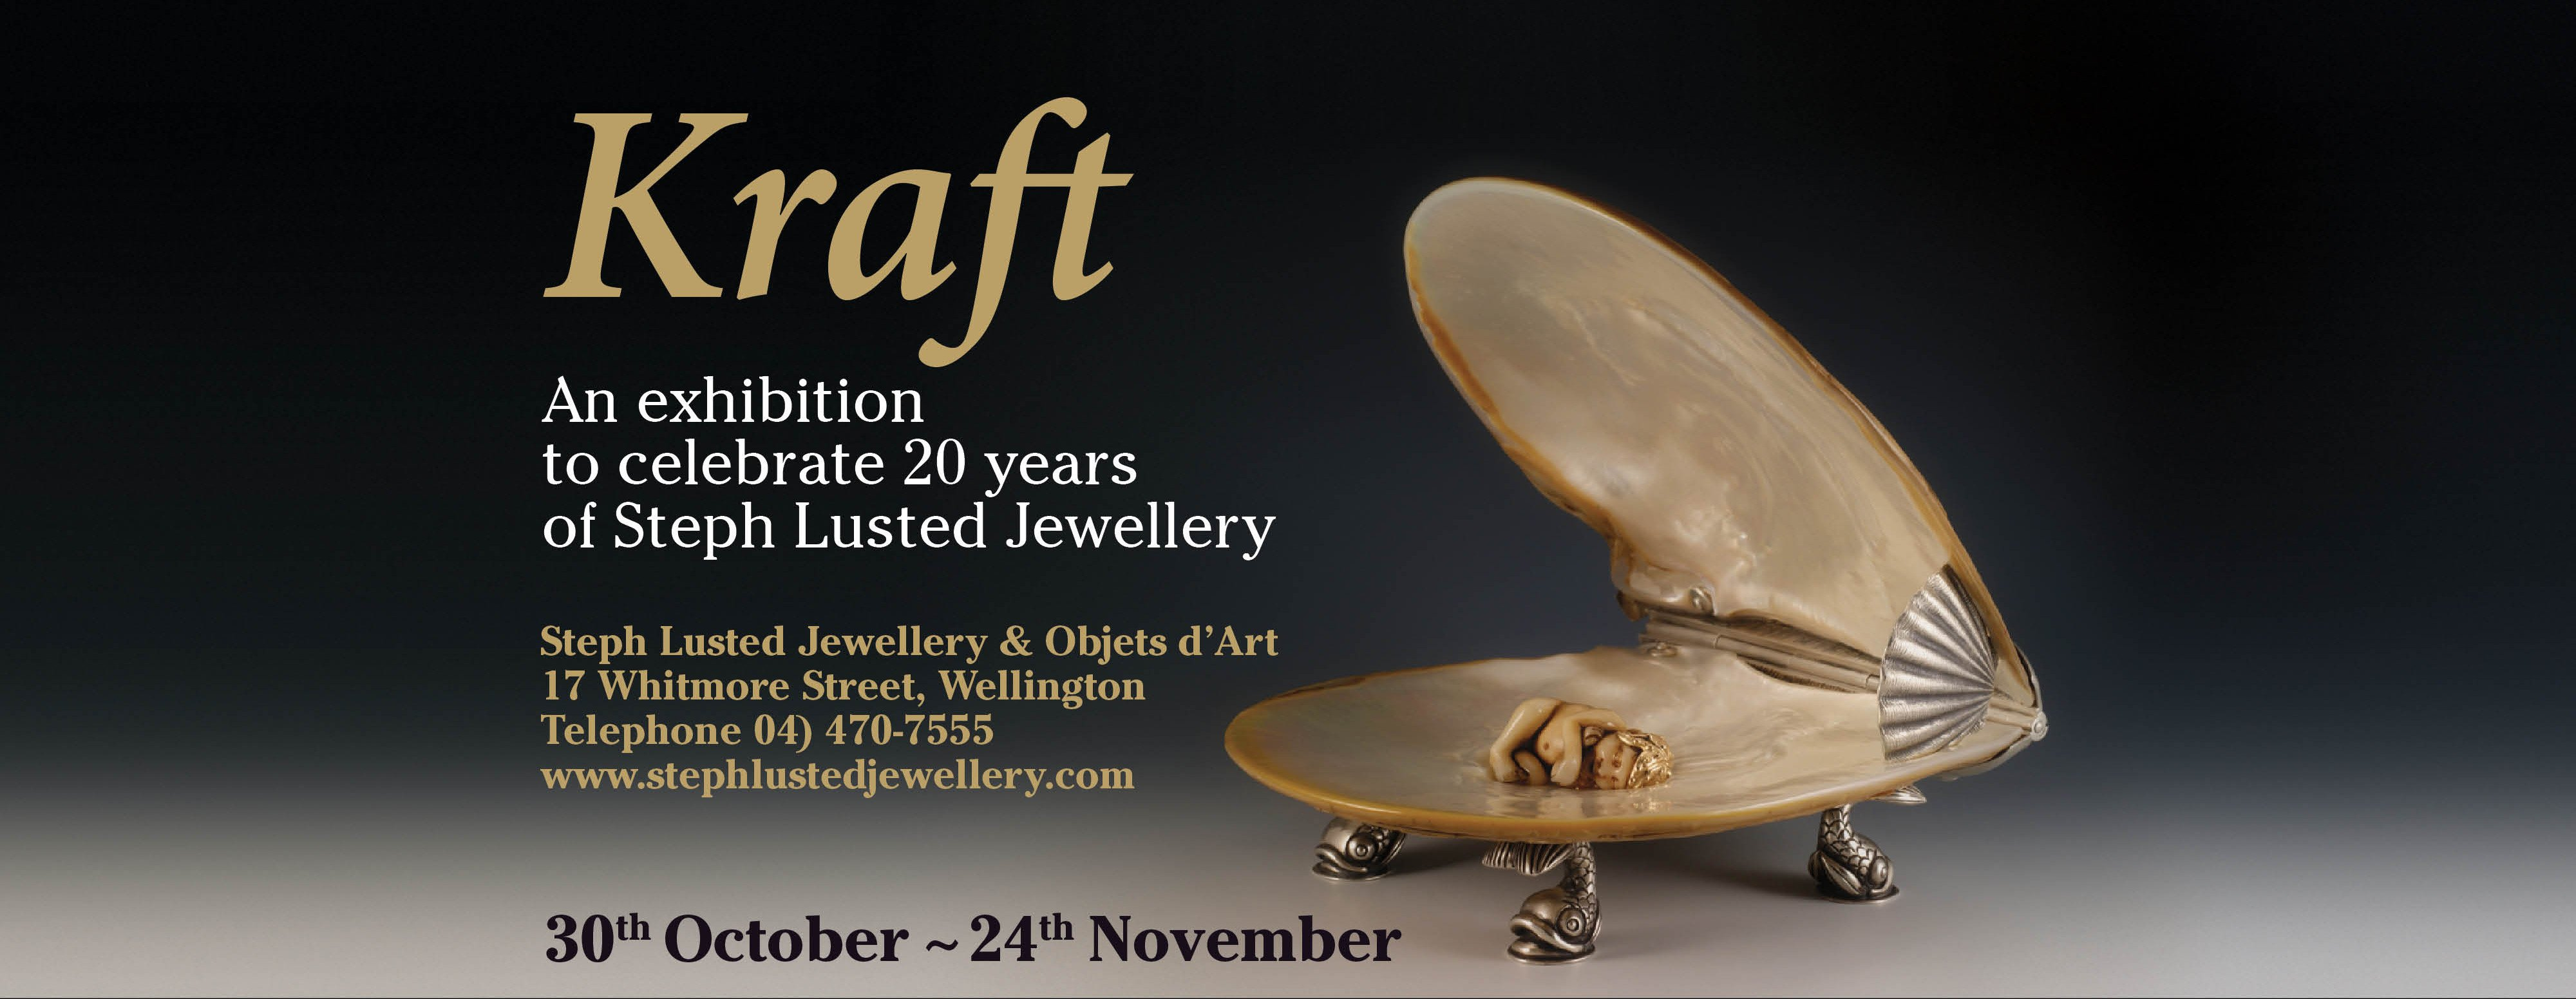 Kraft - An exhibition to celebrate 20 years of Steph Lusted Jewellery